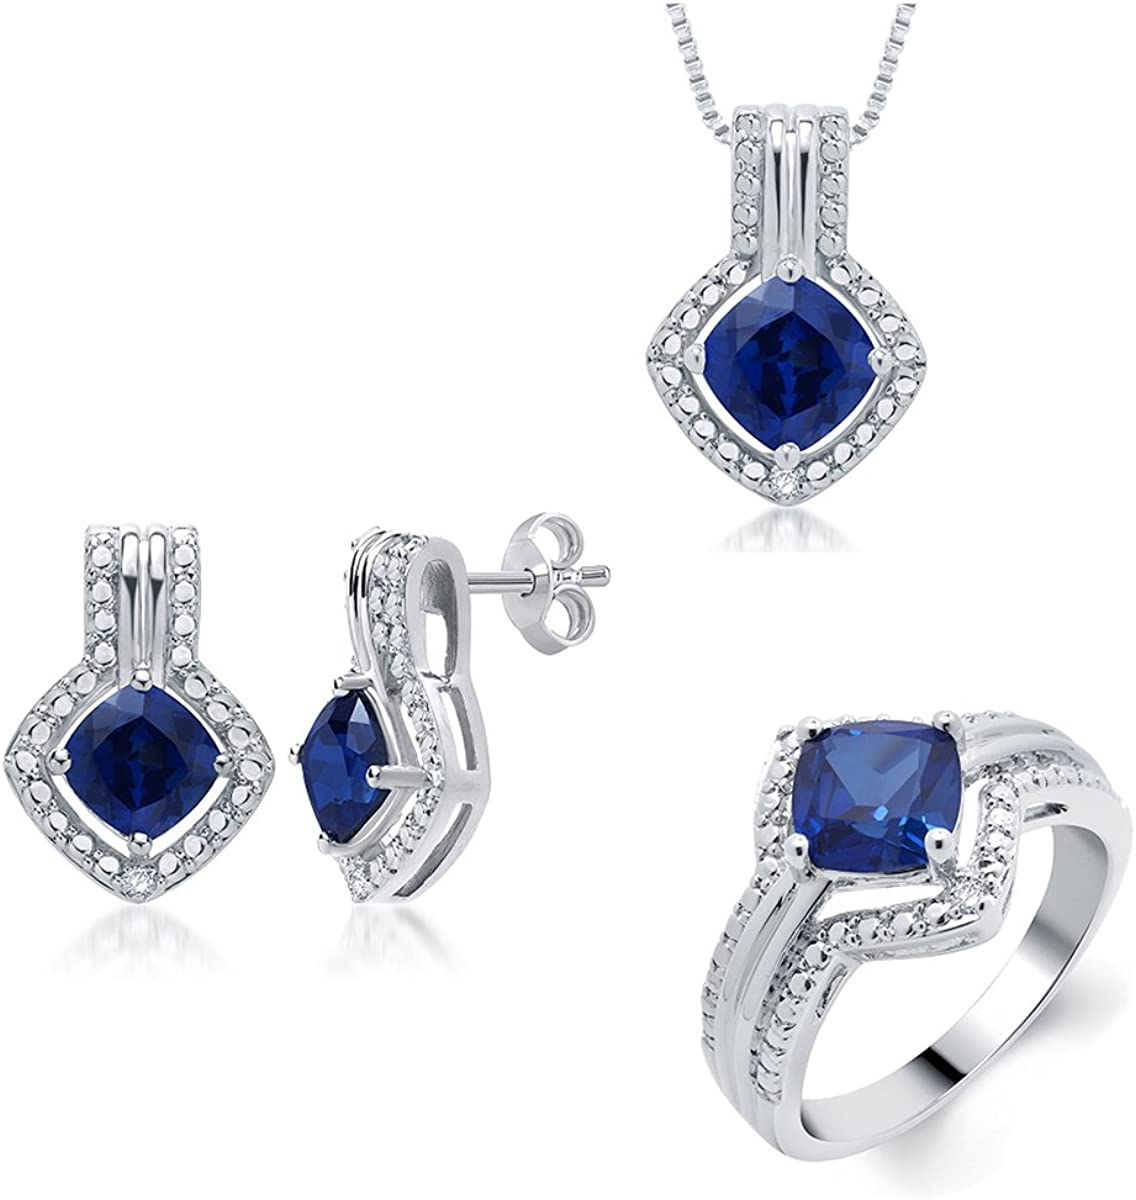 Classic Prong-Set Gold Rhodium over Brass Blue Sapphire and Diamond Accent 3 Piece Set Consists of Pendant Earring and Ring for Women Girls Daily Wear Jewelry | by La4ve Diamonds |Gift Box Included